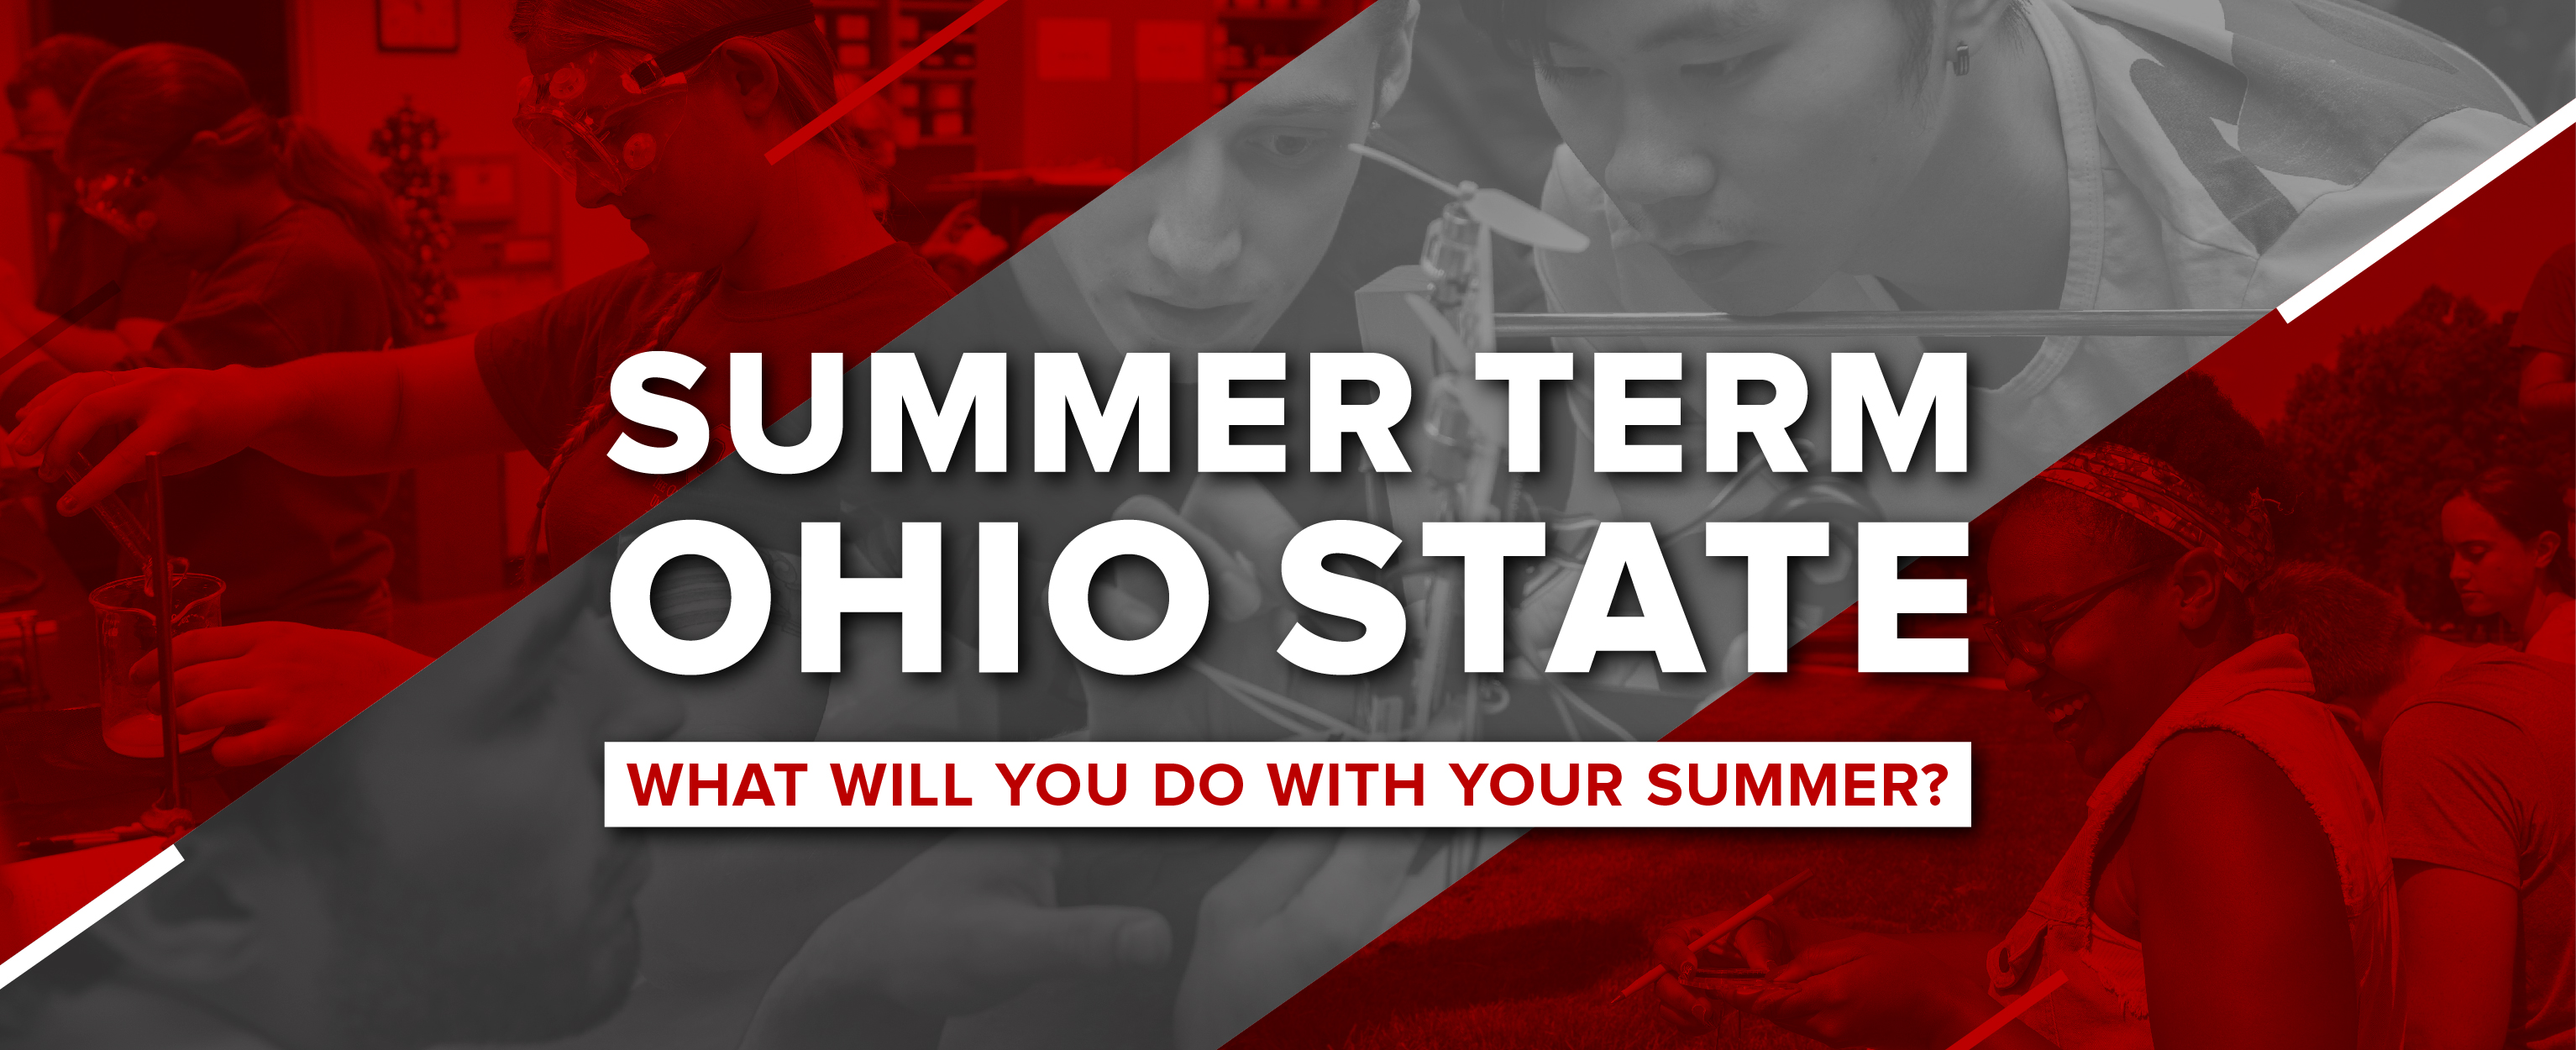 Summer Term > The Ohio State University